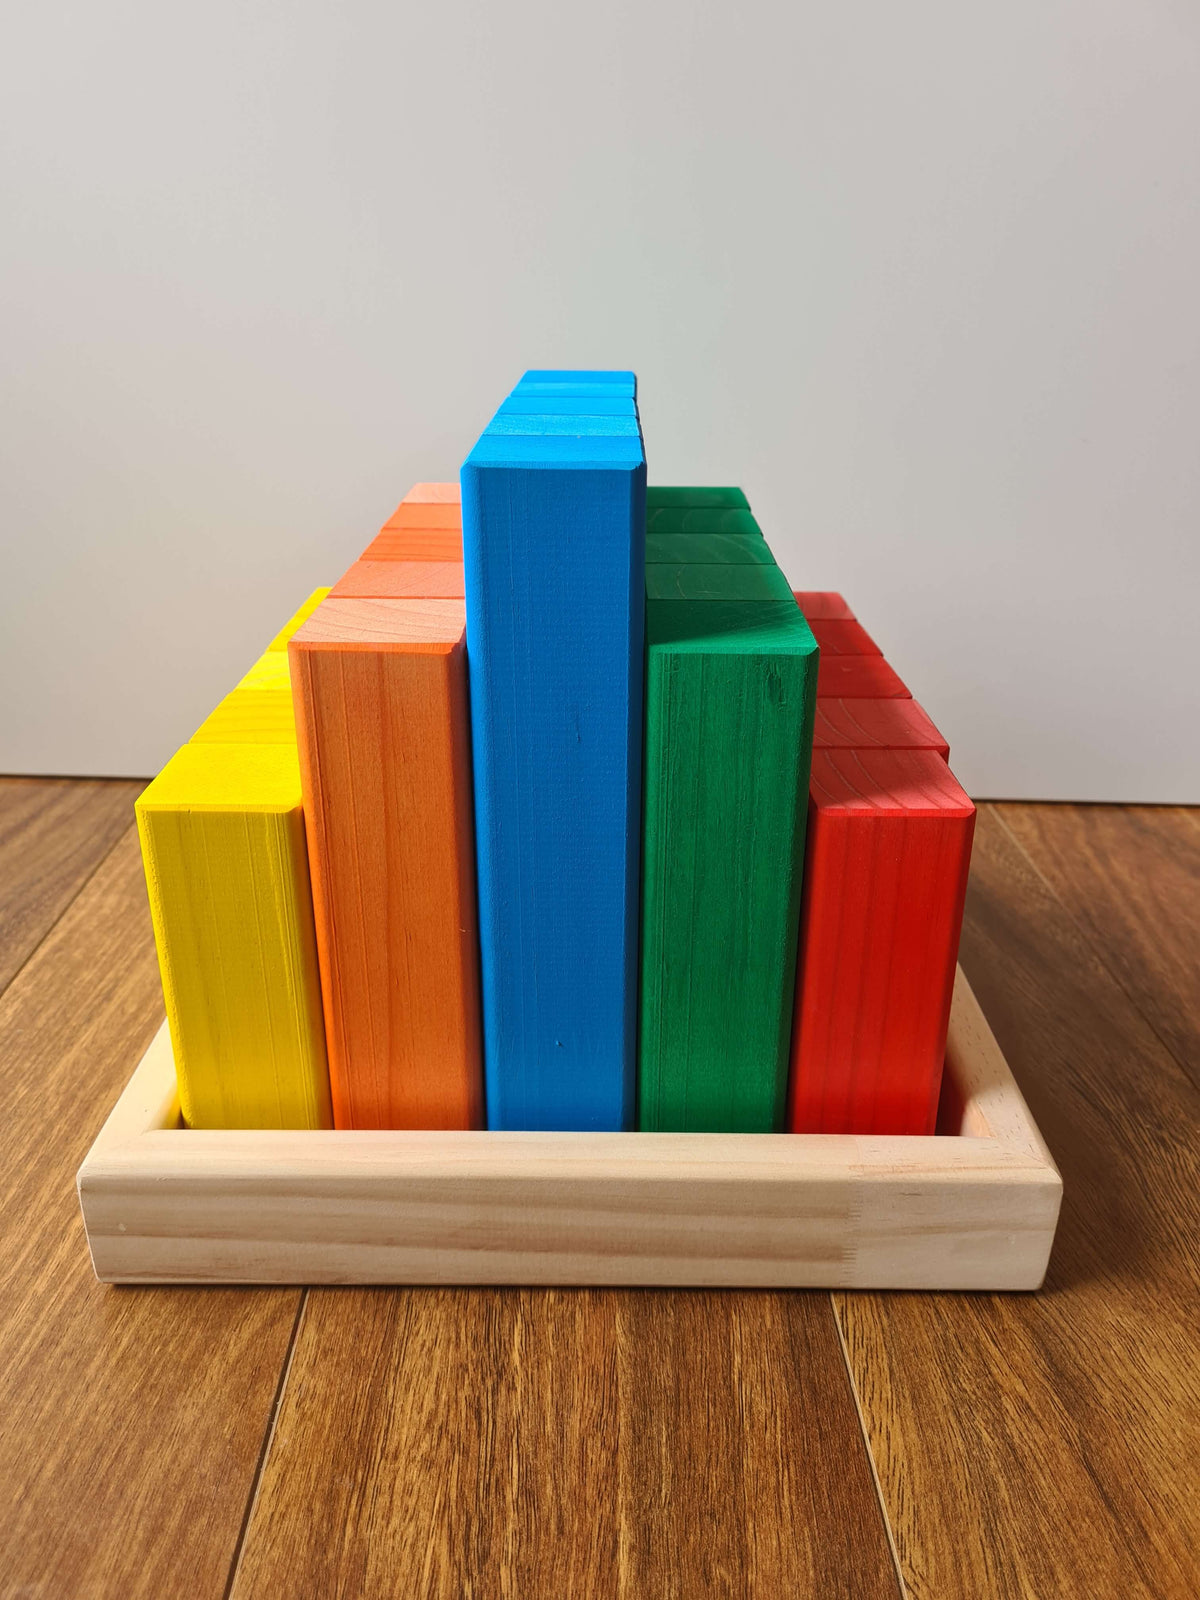 Coloured Building Blocks – 25 Piece Kit - Large